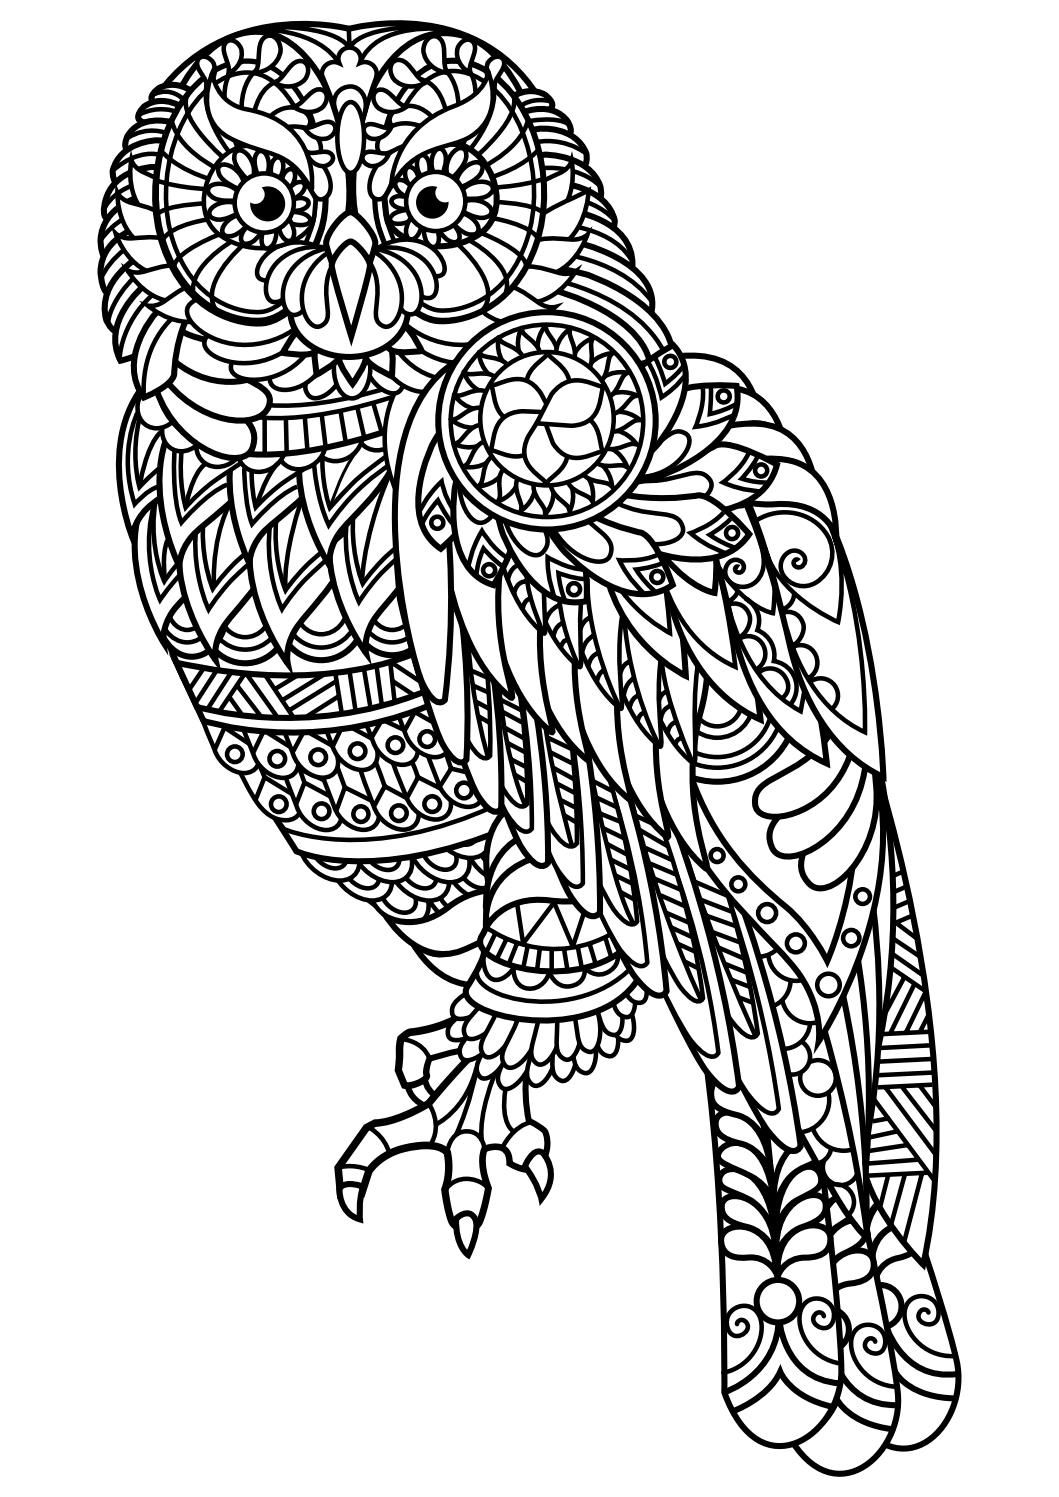 The Best Free Libros Coloring Page Images Download From 11